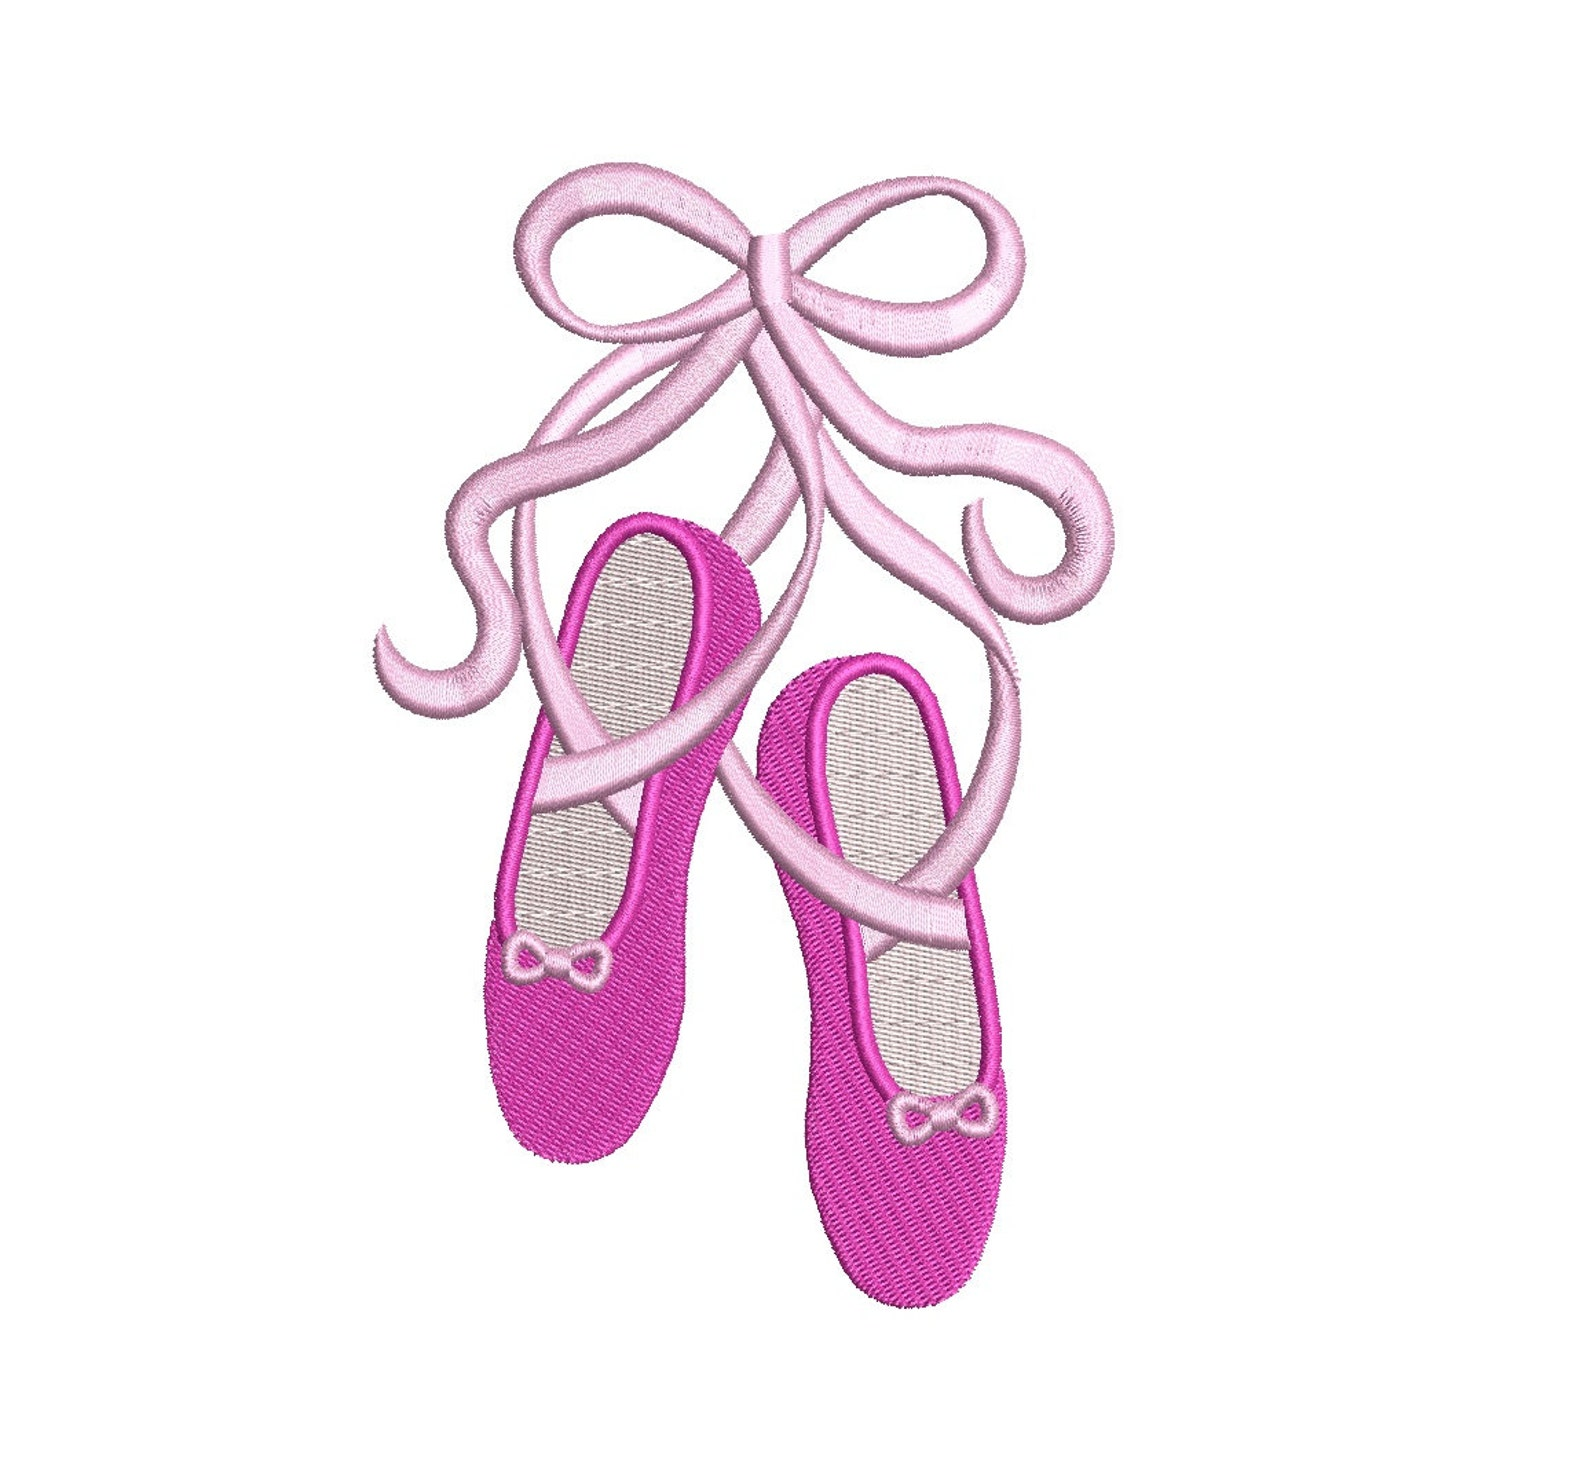 ballet shoes with ribbons machine embroidery filled digitized design pattern - instant download- 4x4 , 5x7, 6x10